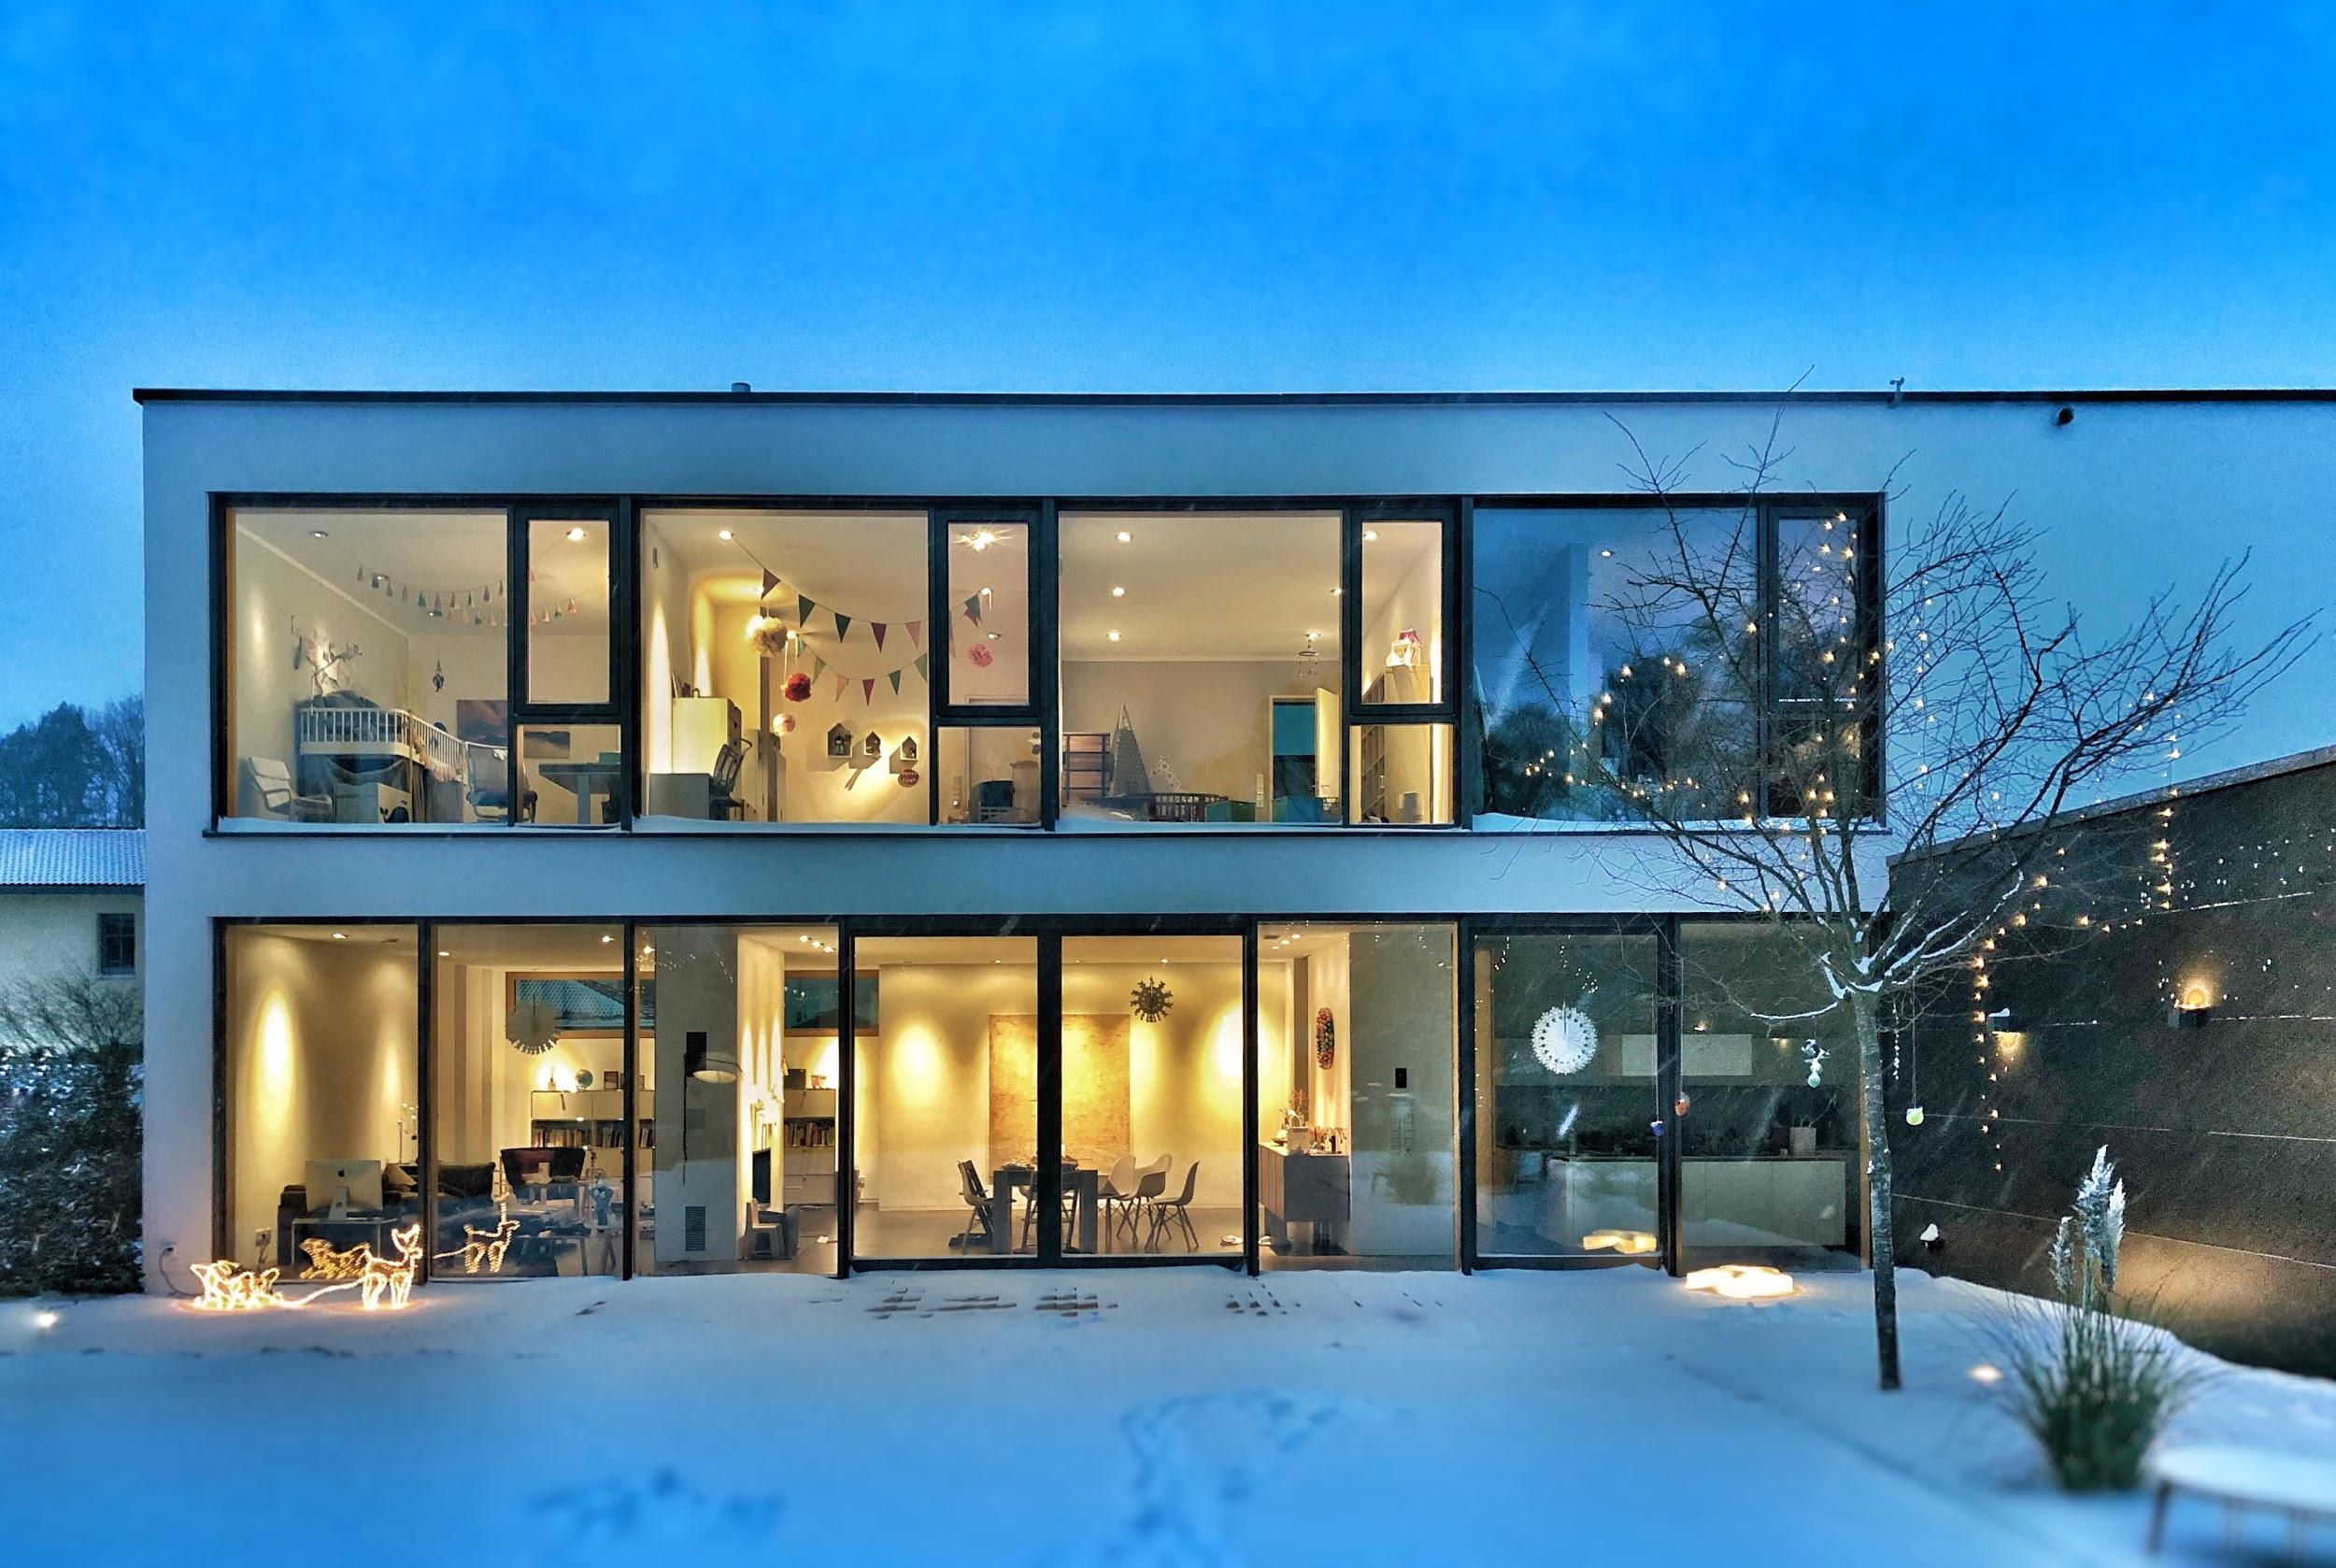 Top 5 Design Ideas You Will Love to Use for Your Own Home modern home